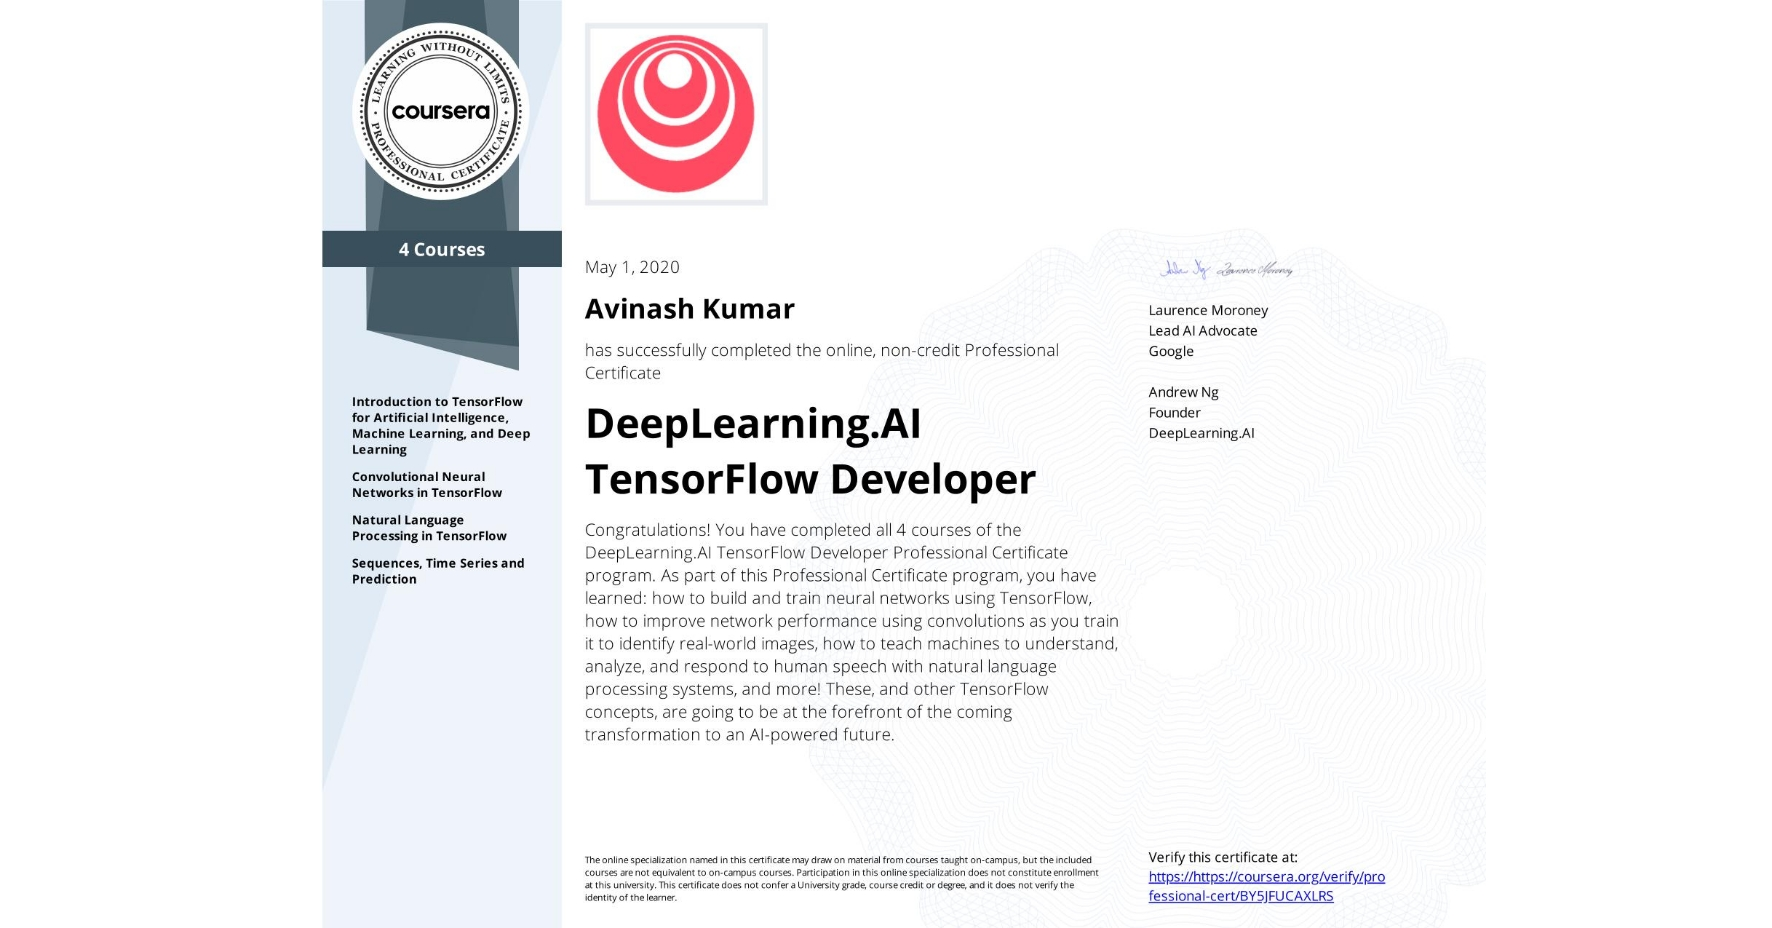 View certificate for Avinash Kumar, DeepLearning.AI TensorFlow Developer, offered through Coursera. Congratulations! You have completed all 4 courses of the DeepLearning.AI TensorFlow Developer Professional Certificate program.   As part of this Professional Certificate program, you have learned: how to build and train neural networks using TensorFlow, how to improve network performance using convolutions as you train it to identify real-world images, how to teach machines to understand, analyze, and respond to human speech with natural language processing systems, and more!  These, and other TensorFlow concepts, are going to be at the forefront of the coming transformation to an AI-powered future.